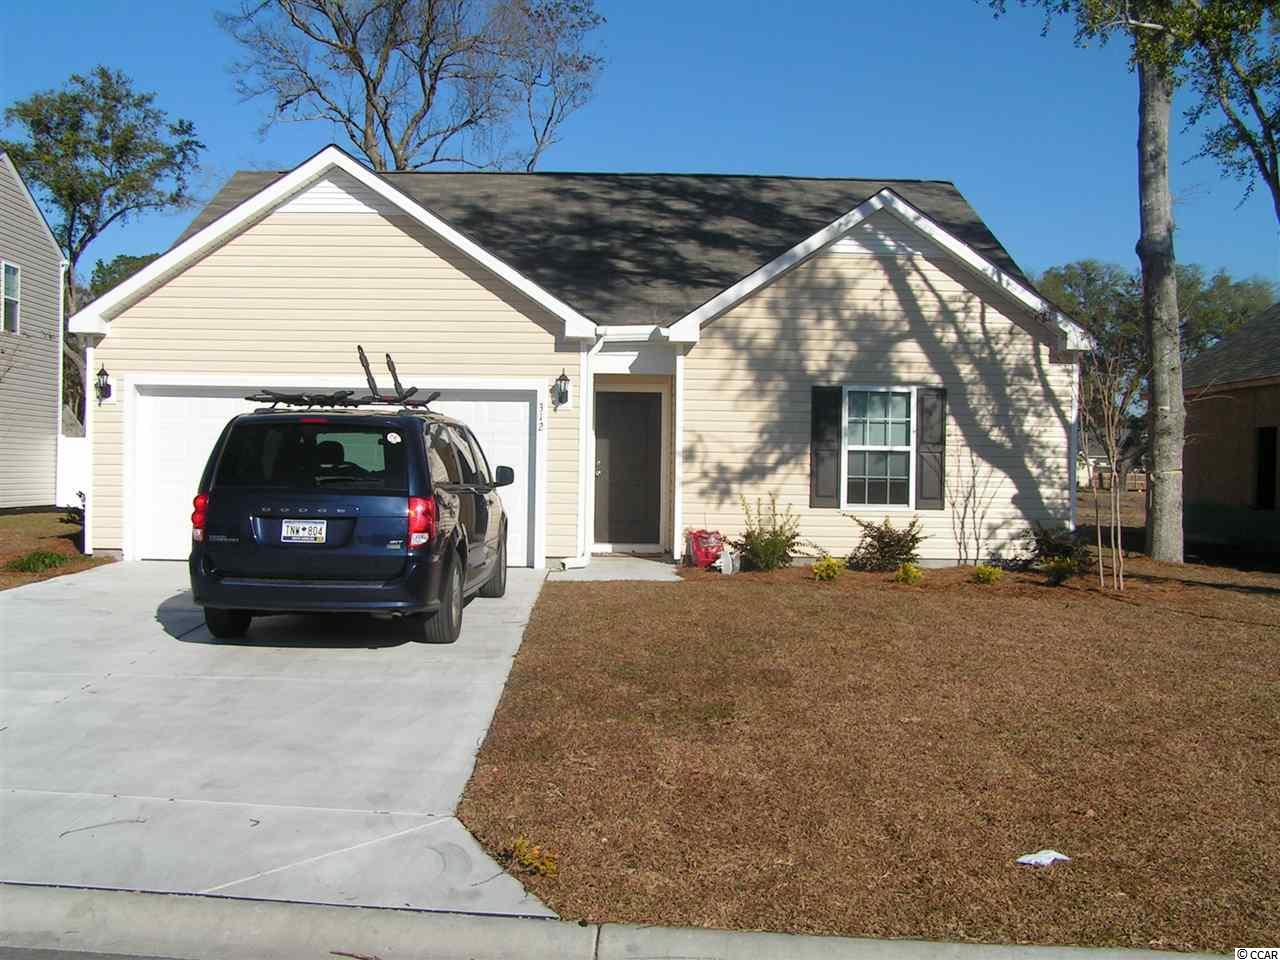 Grove Park is a natural Gas Community located in The quite area of Murrells Inlet off of Wesley Rd west side of 17 Bypass. Close to the Famous Murrells Inlet Marsh Walk where there are great restaurants and a boardwalk overlooking Murrells Inlet water views with live nightly entertainment for all.  We are 2 miles from the Brook Green Gardens and Hunting Beach state park, Close to all great Myrtle Beach and South Stand golf courses,  just minutes from the Prestigious beaches of Litchfield and Pawley's Island , with tons of local shops and restaurants. This is a 53 lot gem of a community with live oaks and with some lots overlooking the interior ponds. Grove Park has very relaxed  rules and regulations, allowing privacy fencing, detached sheds and in ground pools depending on lot choice. Don't miss out on your chance of becoming part of the Murrells Inlet Family. The Pictures of this home are not of the actual home but of one in construction.